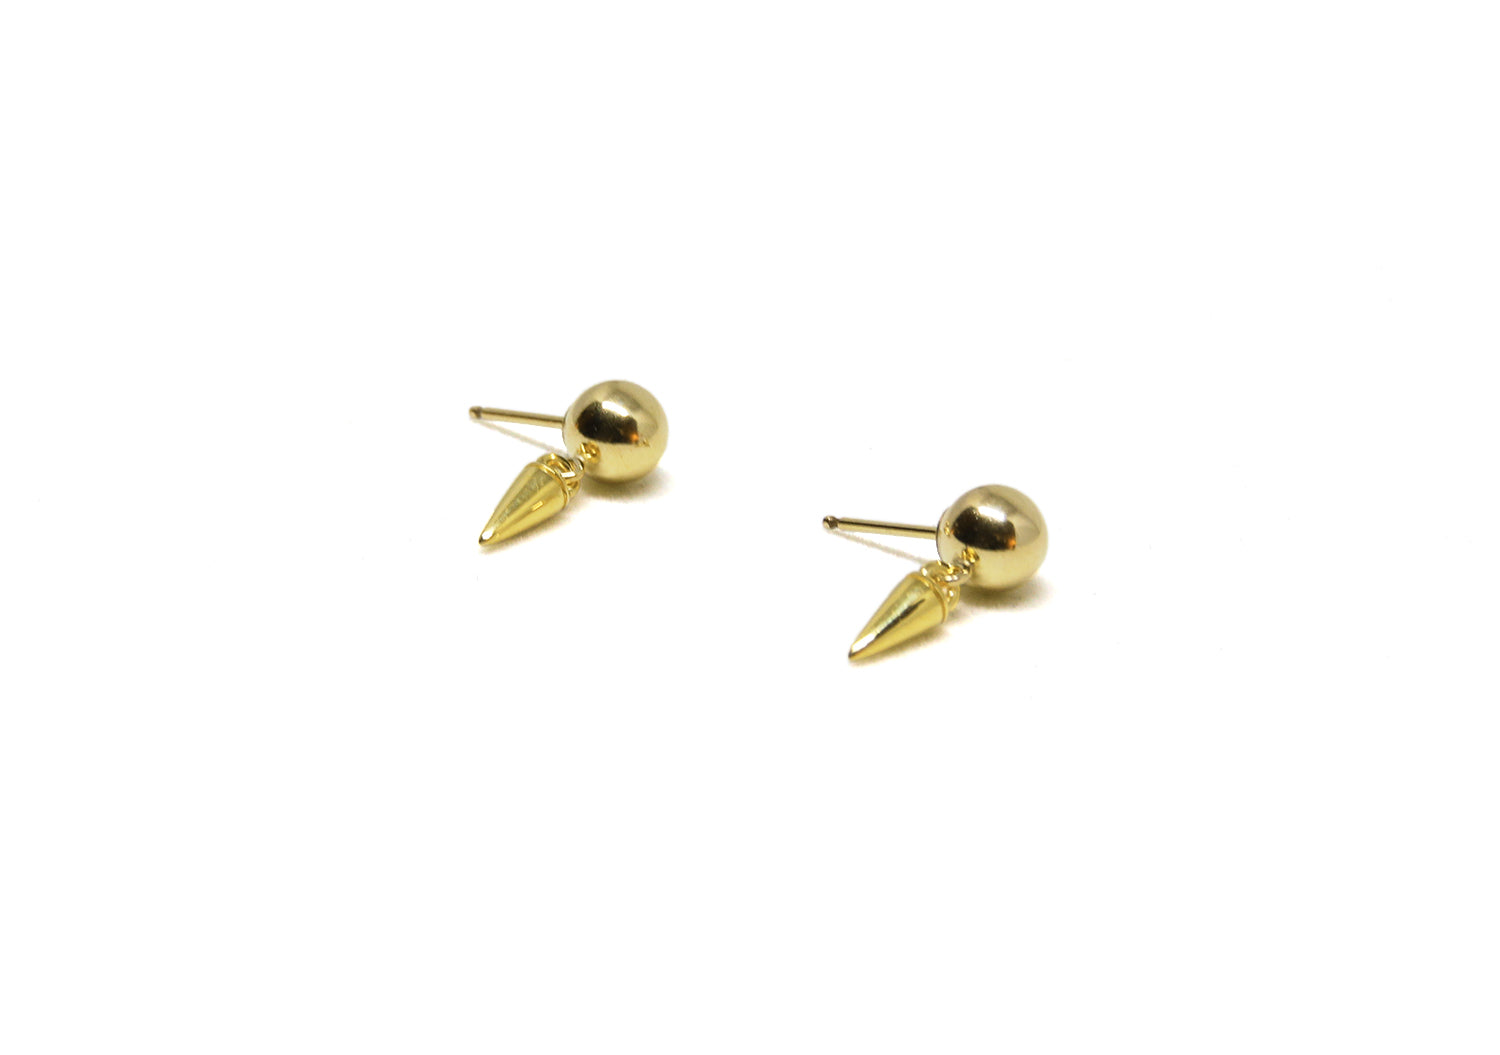 llayers jewelry small spikes ball gold hoops earrings- boucles d'oreilles petits clous sphères en or